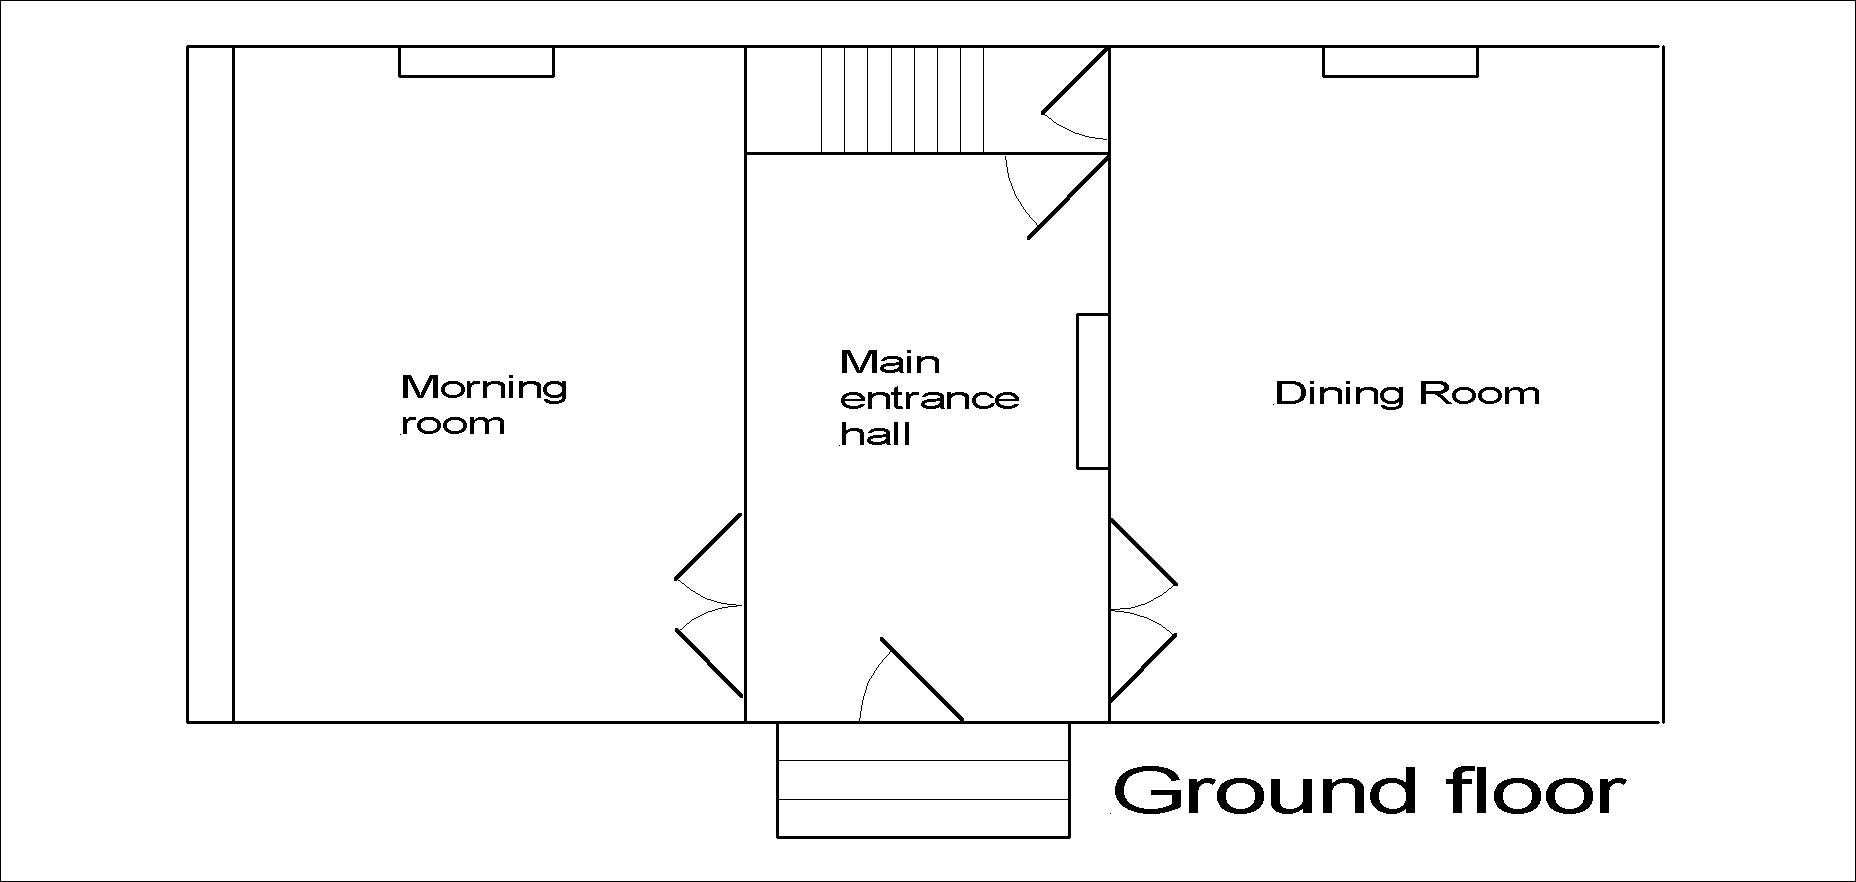 Lincoln Hall ground floor plan.